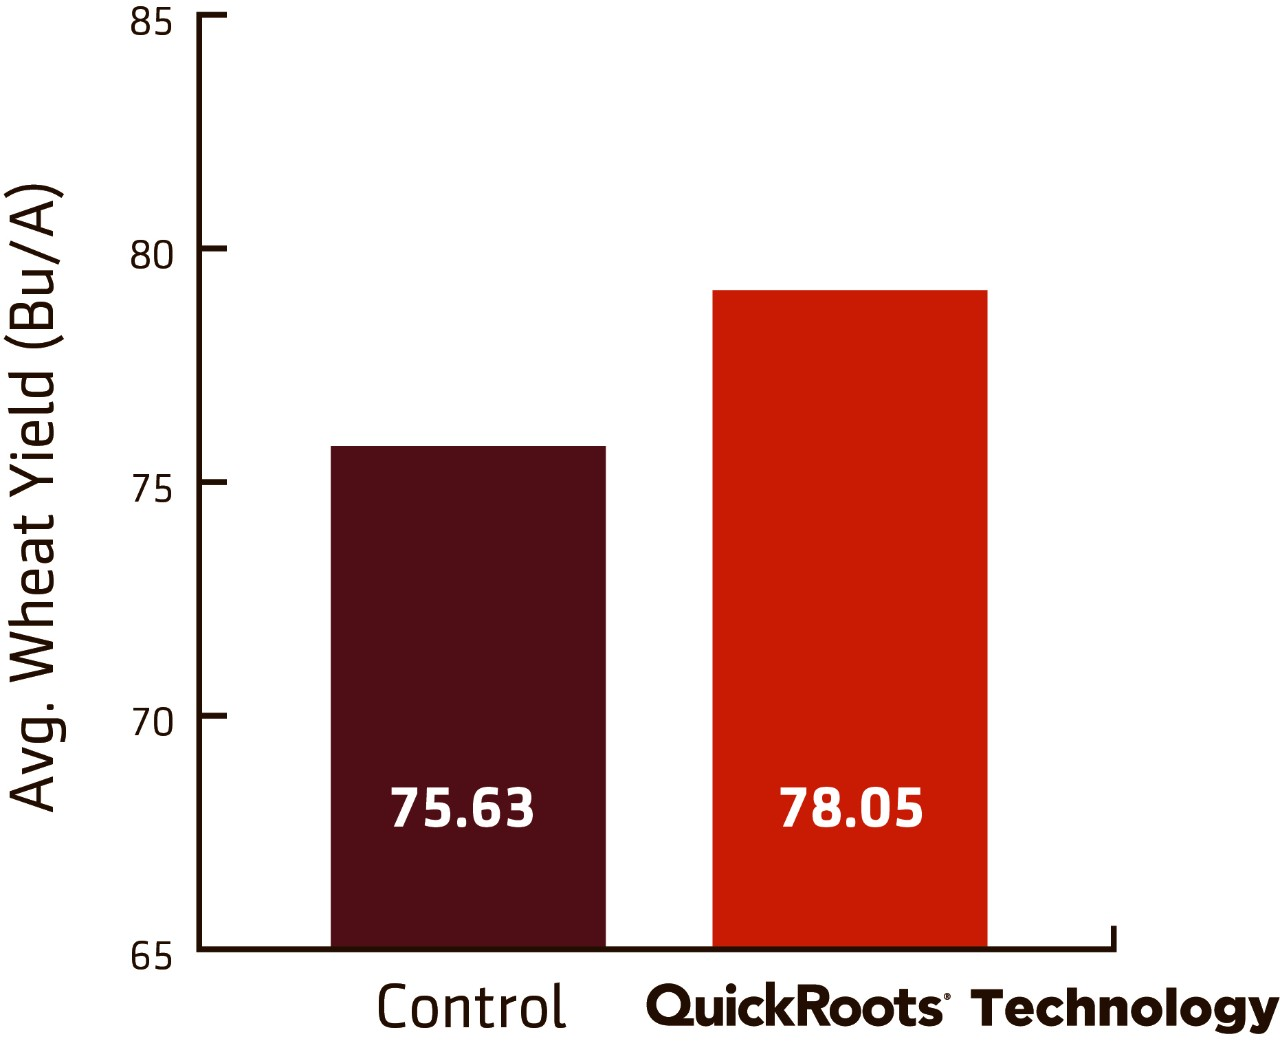 QuickRoots Technology outperforms the average wheat yield